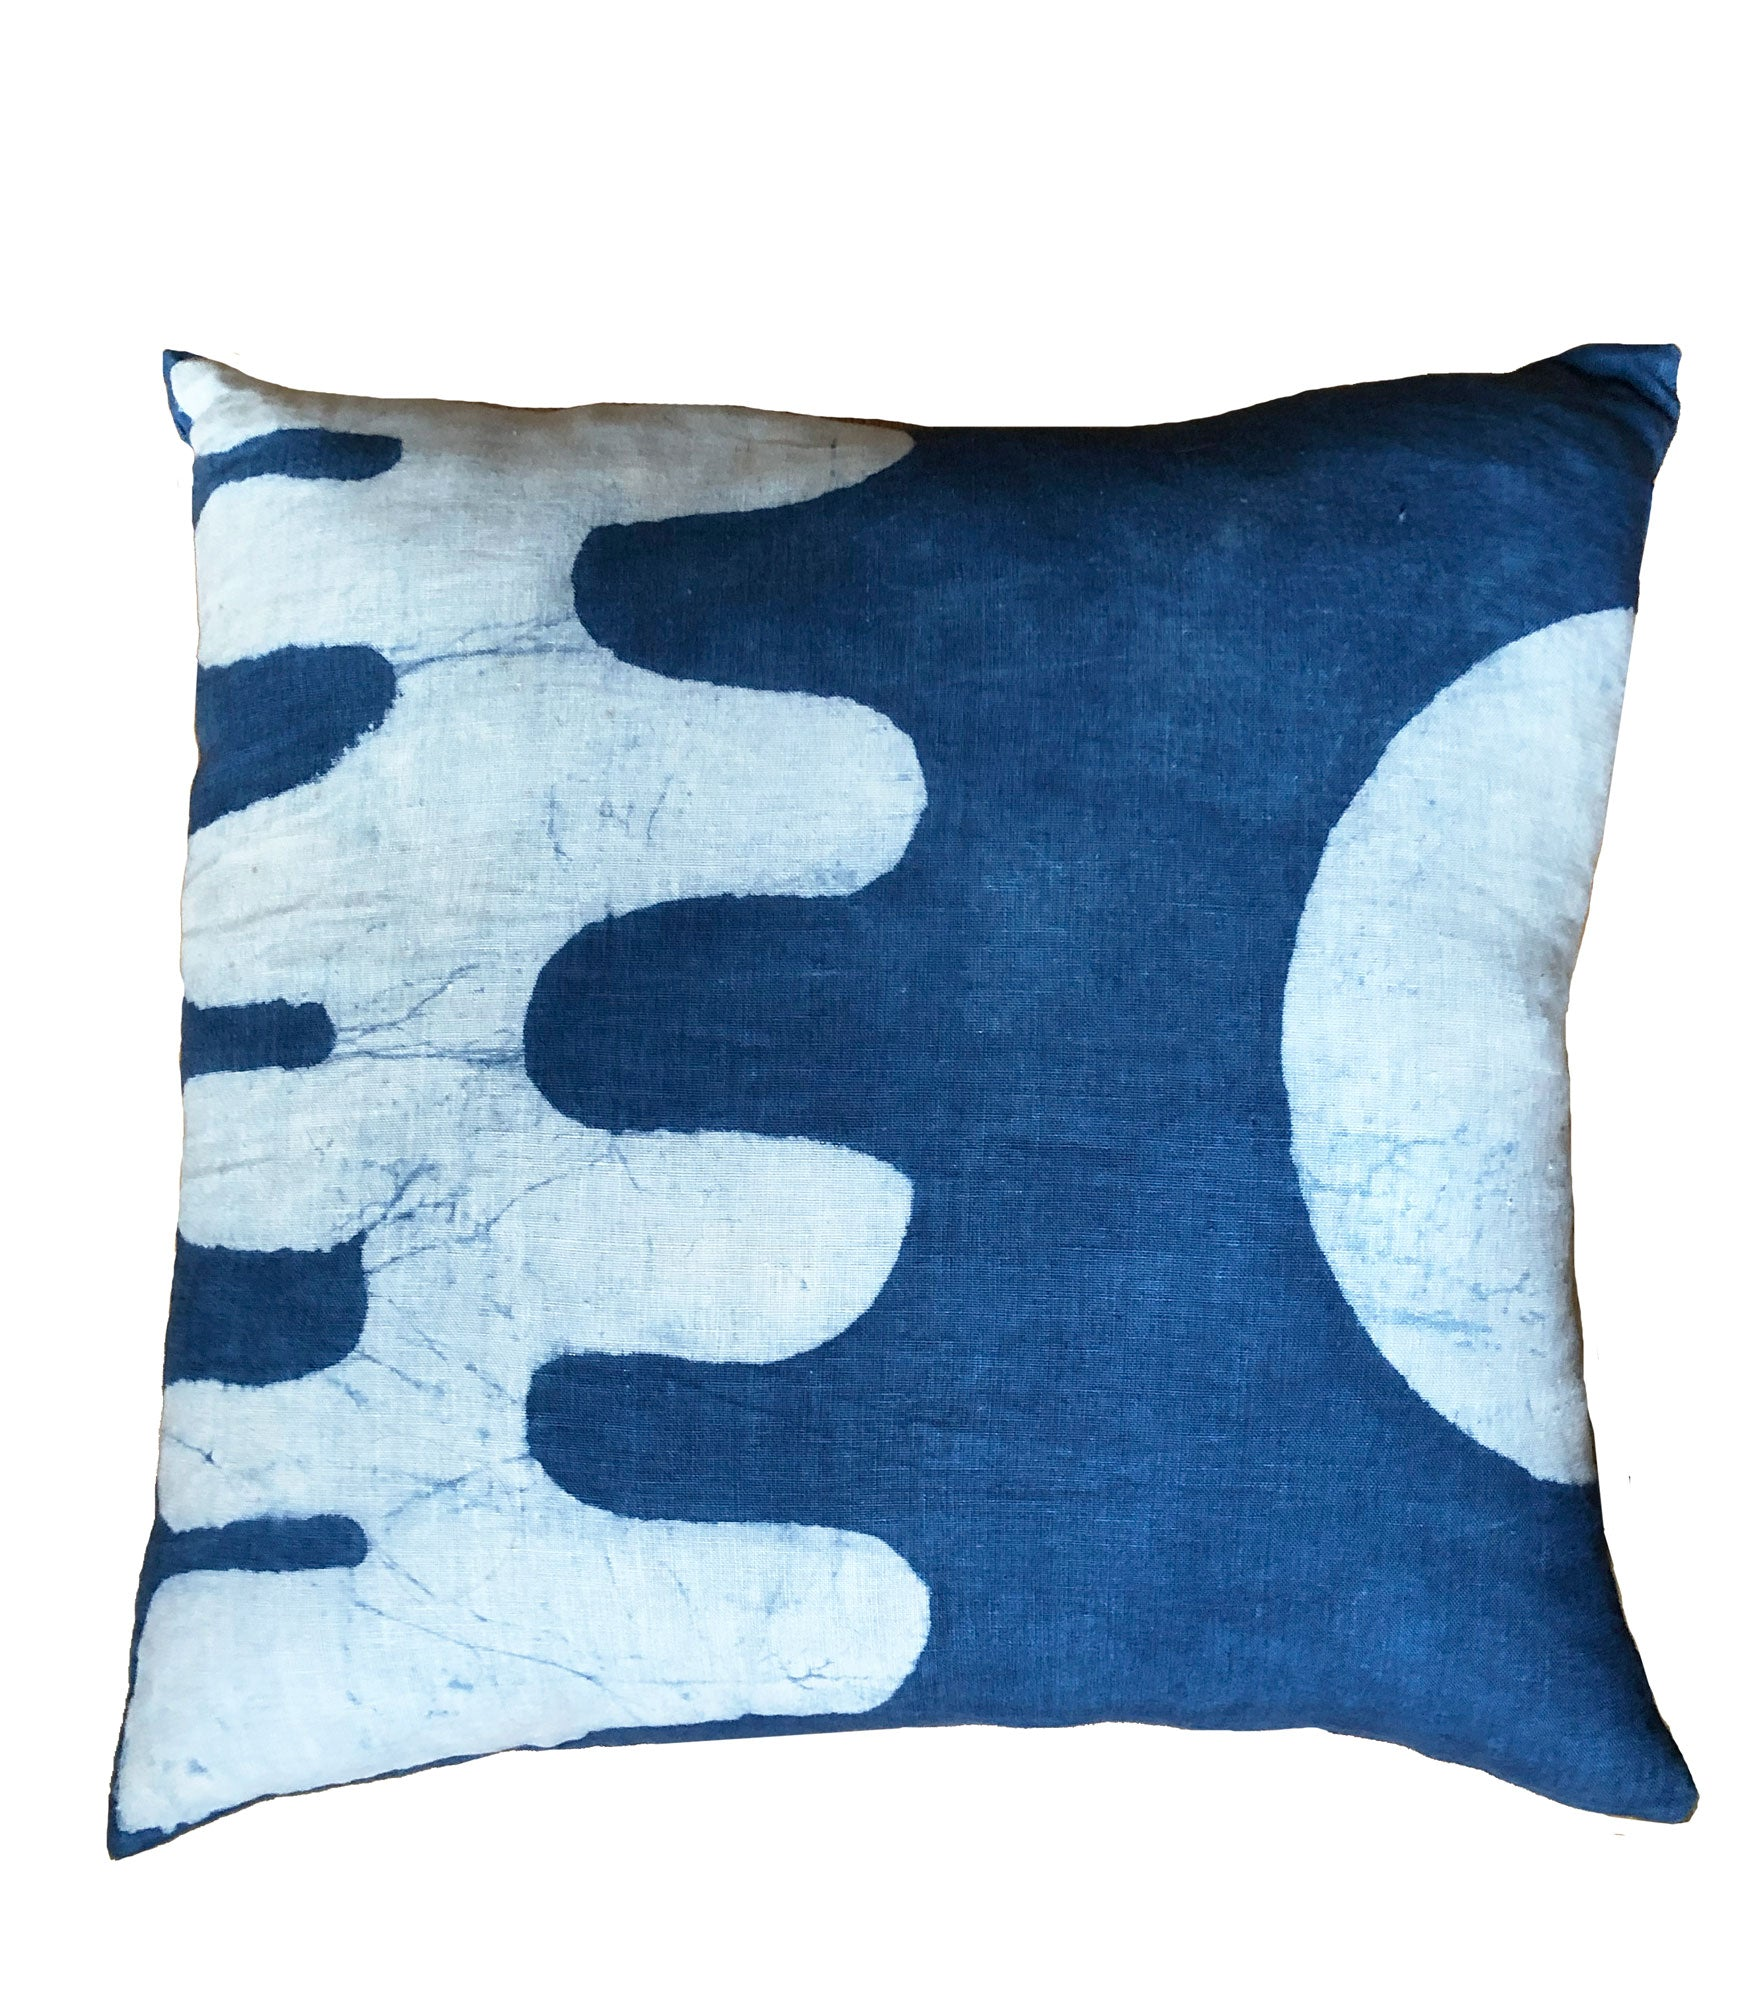 Heron Pillow in Indigo